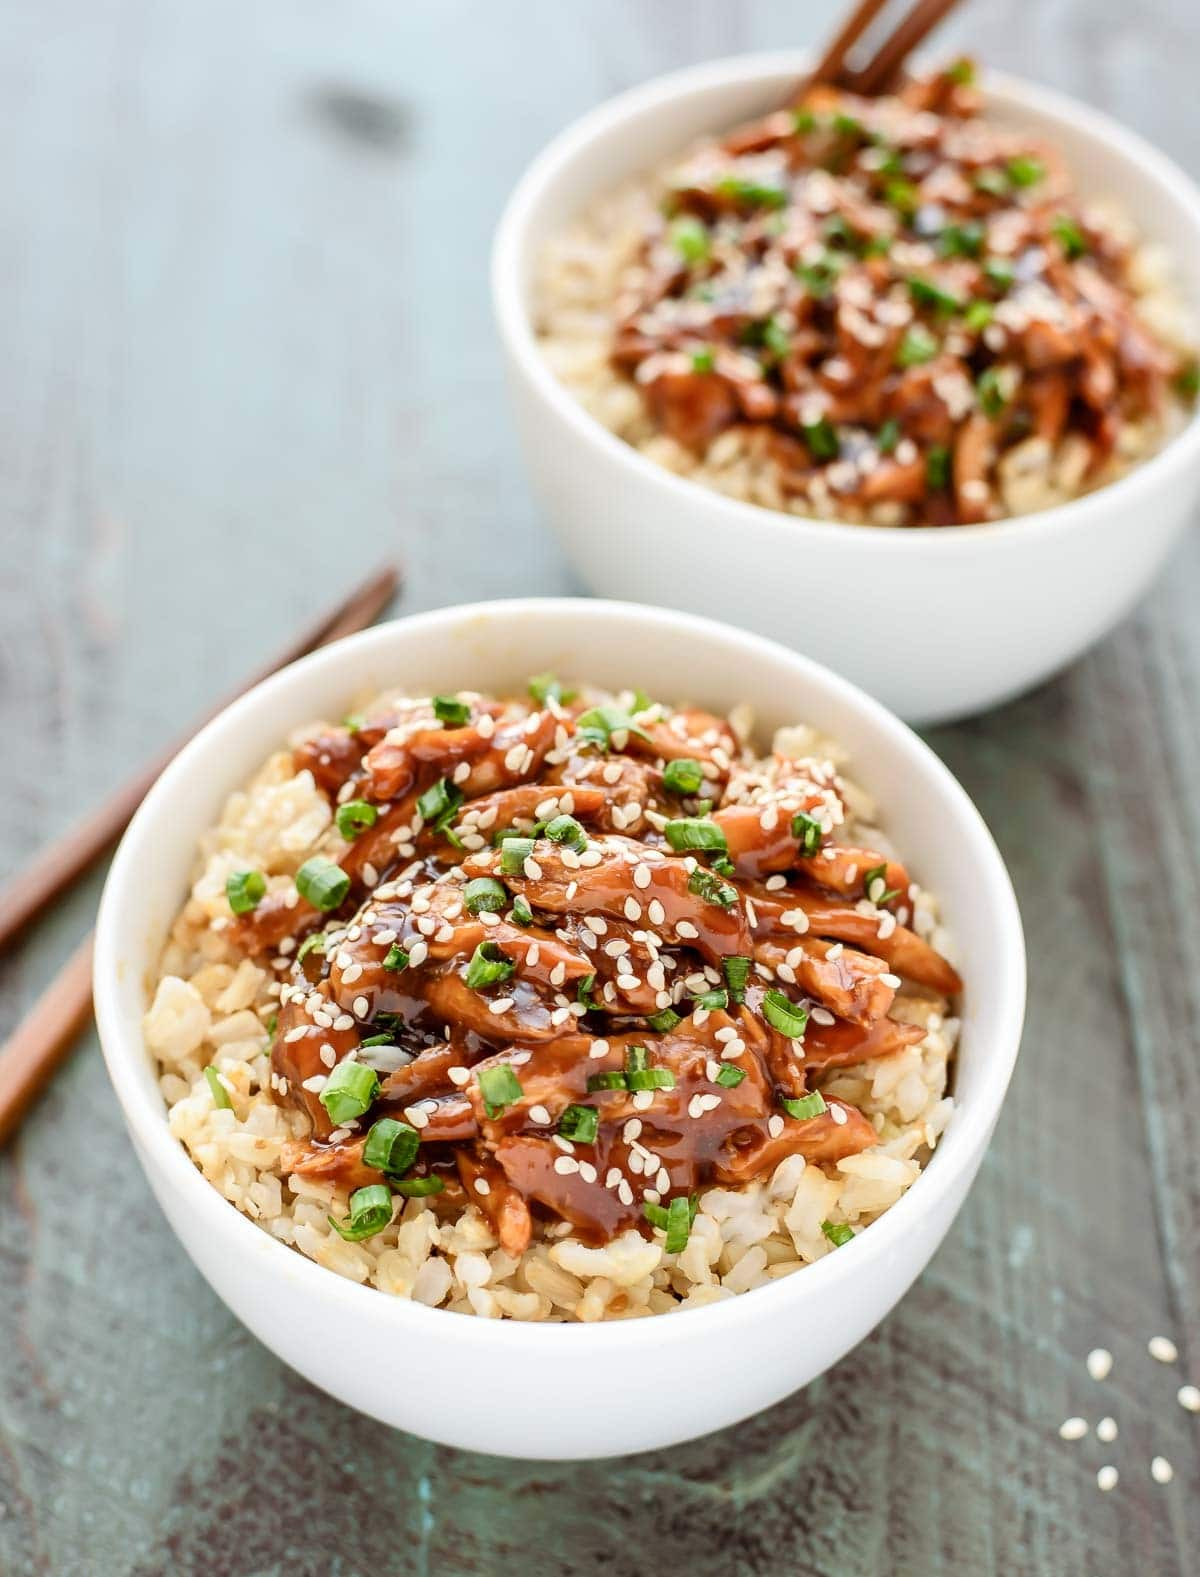 bowls of Asian chicken teriyaki served over rice